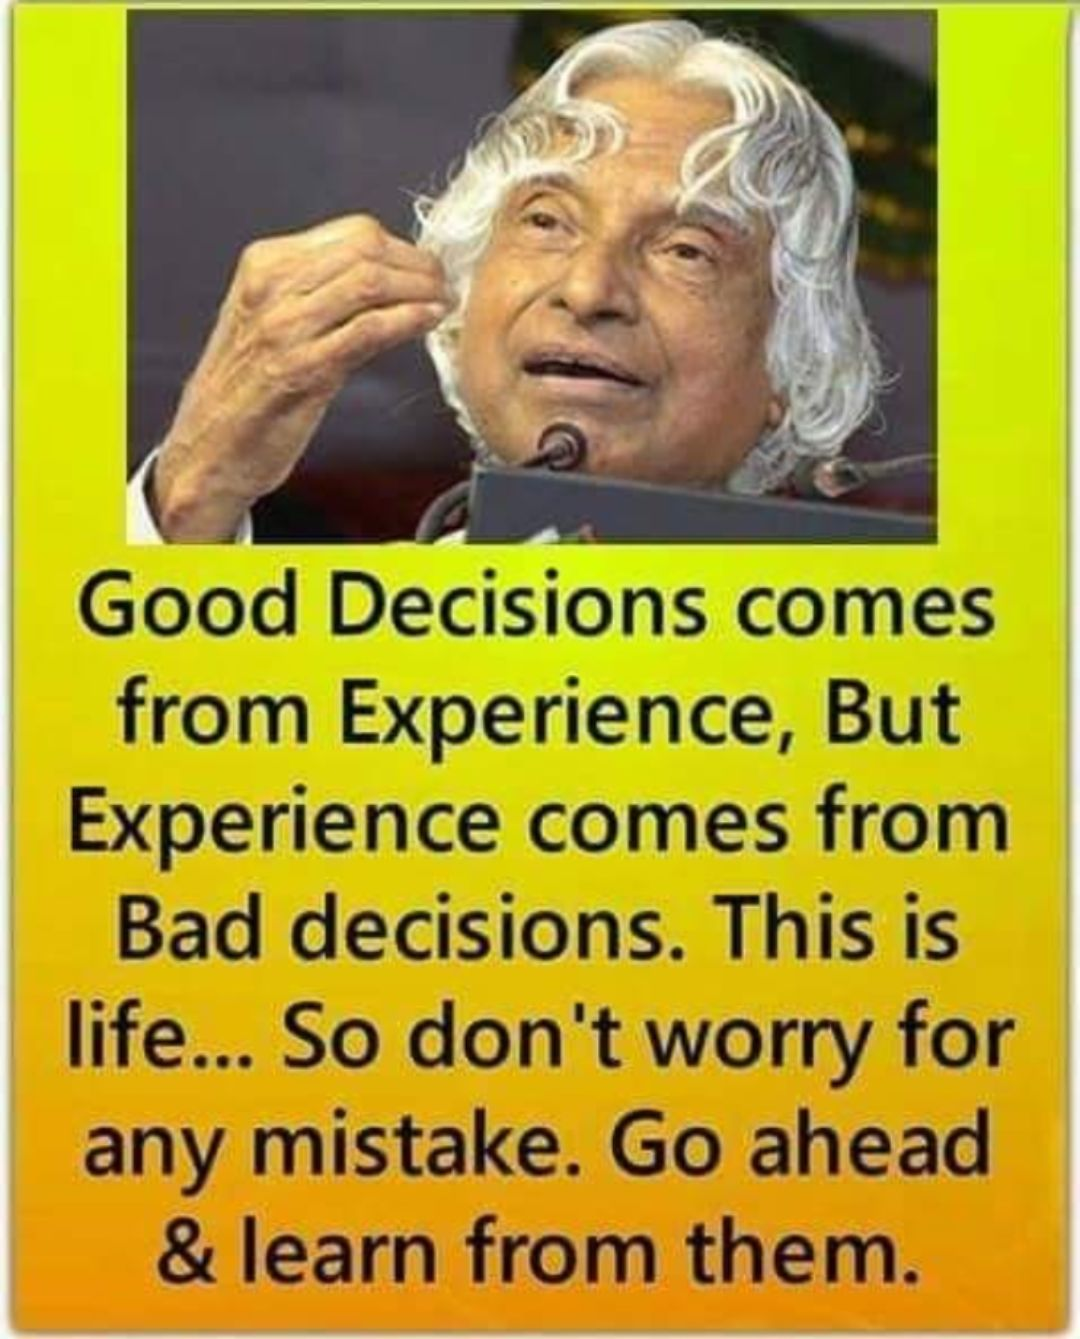 ✍️ ಡಾ.ಅಬ್ದುಲ್ ಕಲಾಮ್ ನುಡಿಗಳು - Good Decisions comes from Experience , But Experience comes from Bad decisions . This is life . . . So don ' t worry for any mistake . Go ahead & learn from them . - ShareChat